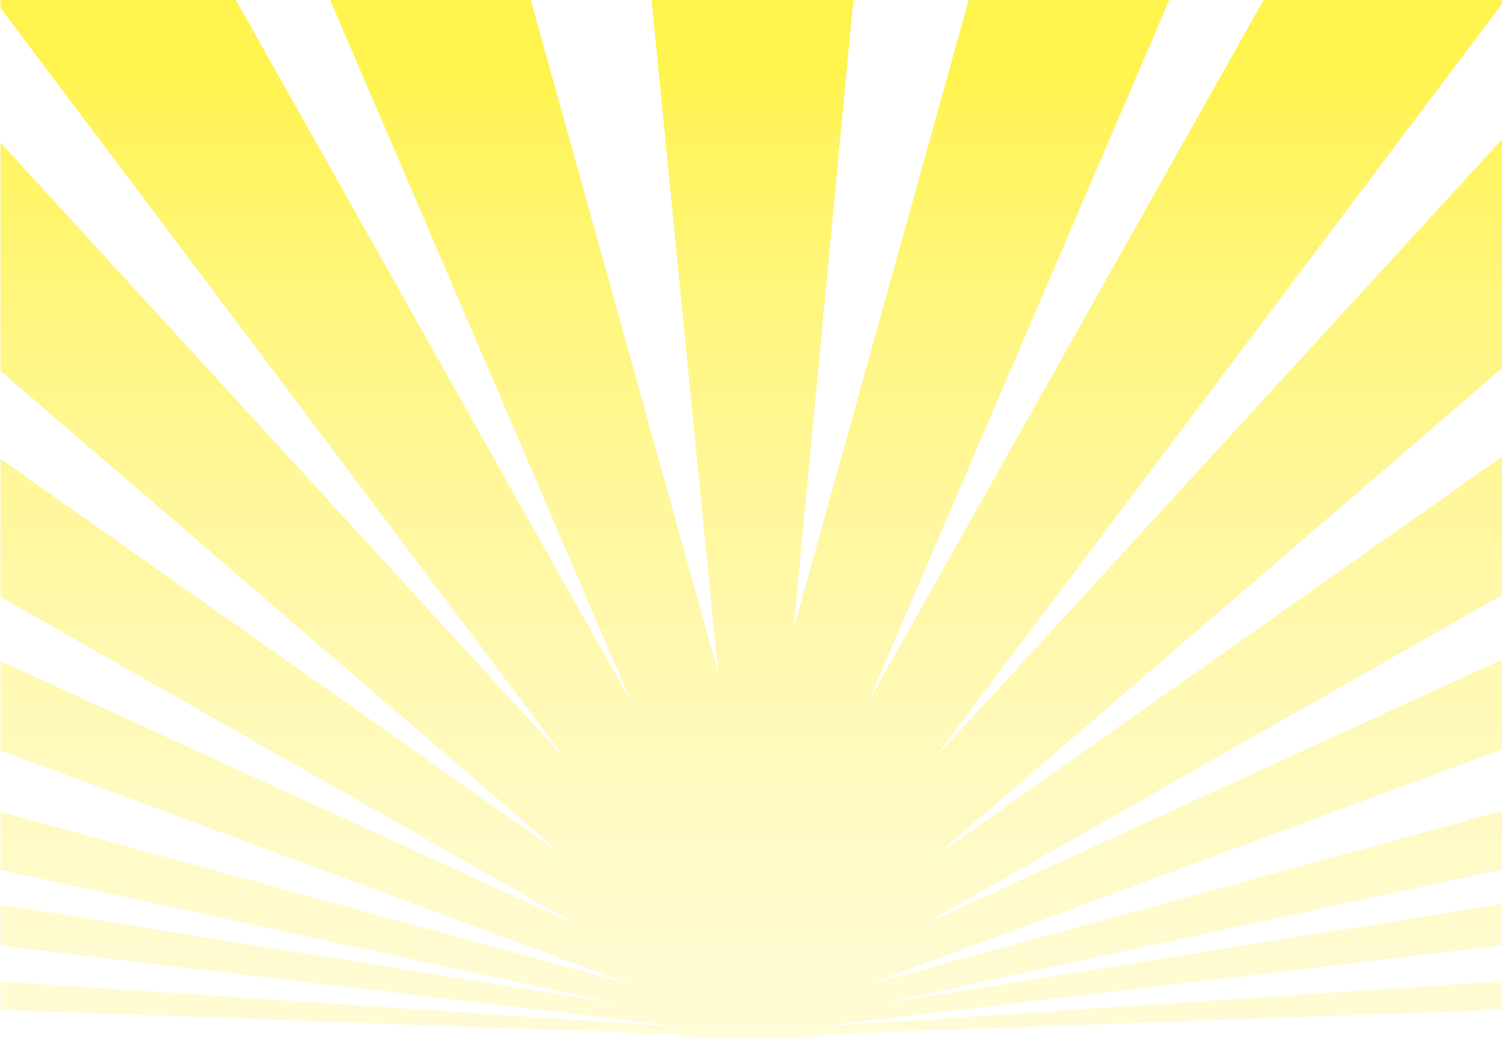 Sun rays background library. Clipart sunshine bright